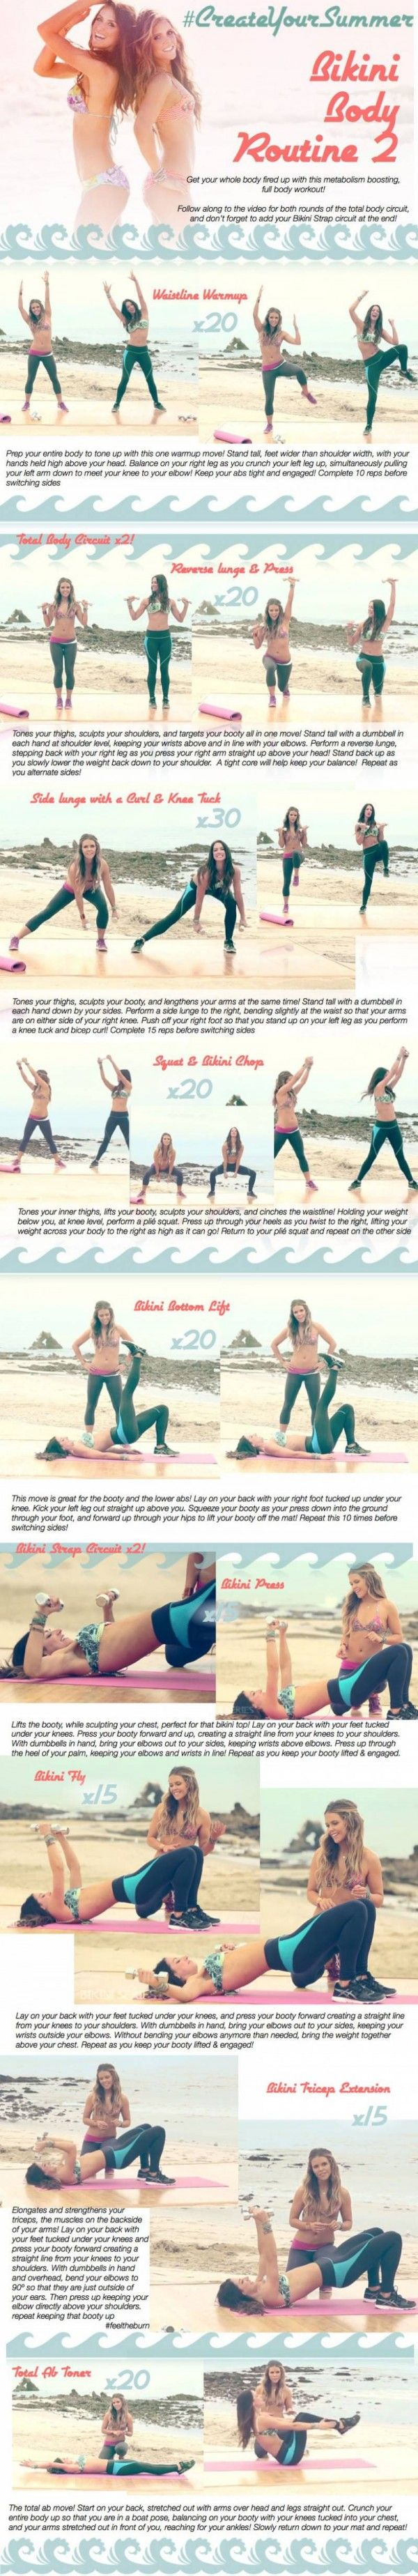 tone it up girls summer workout